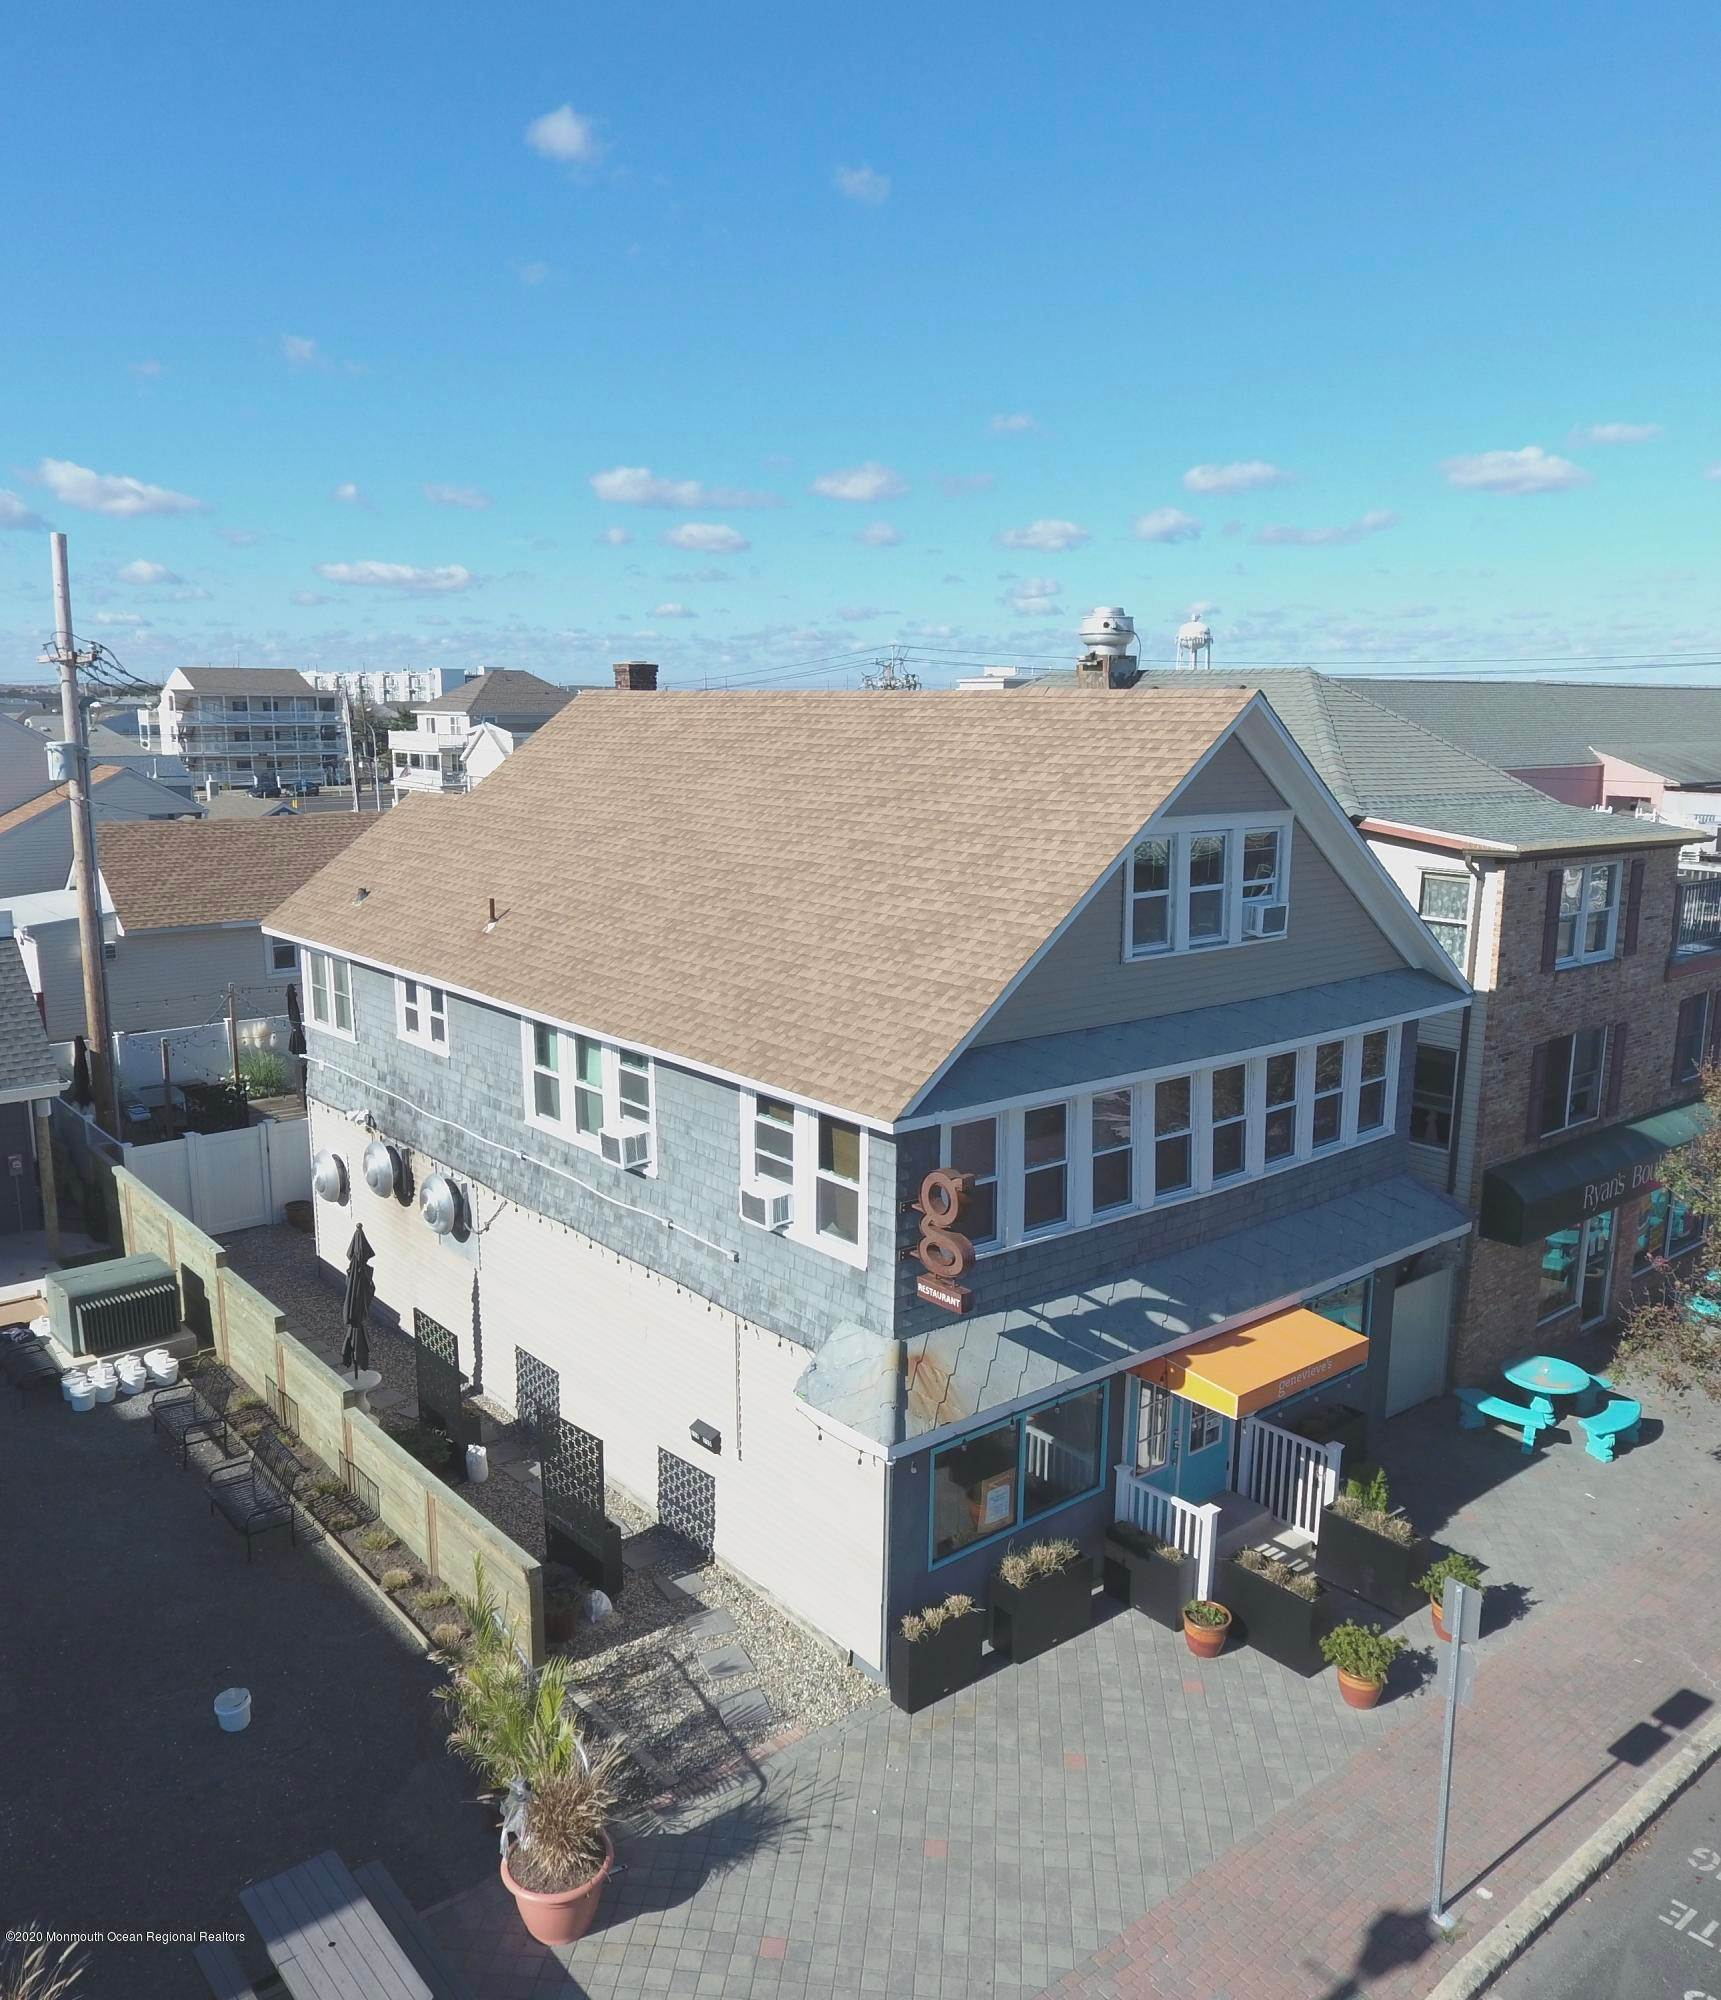 Property for Sale at 115 Boulevard Seaside Heights, New Jersey 08751 United States